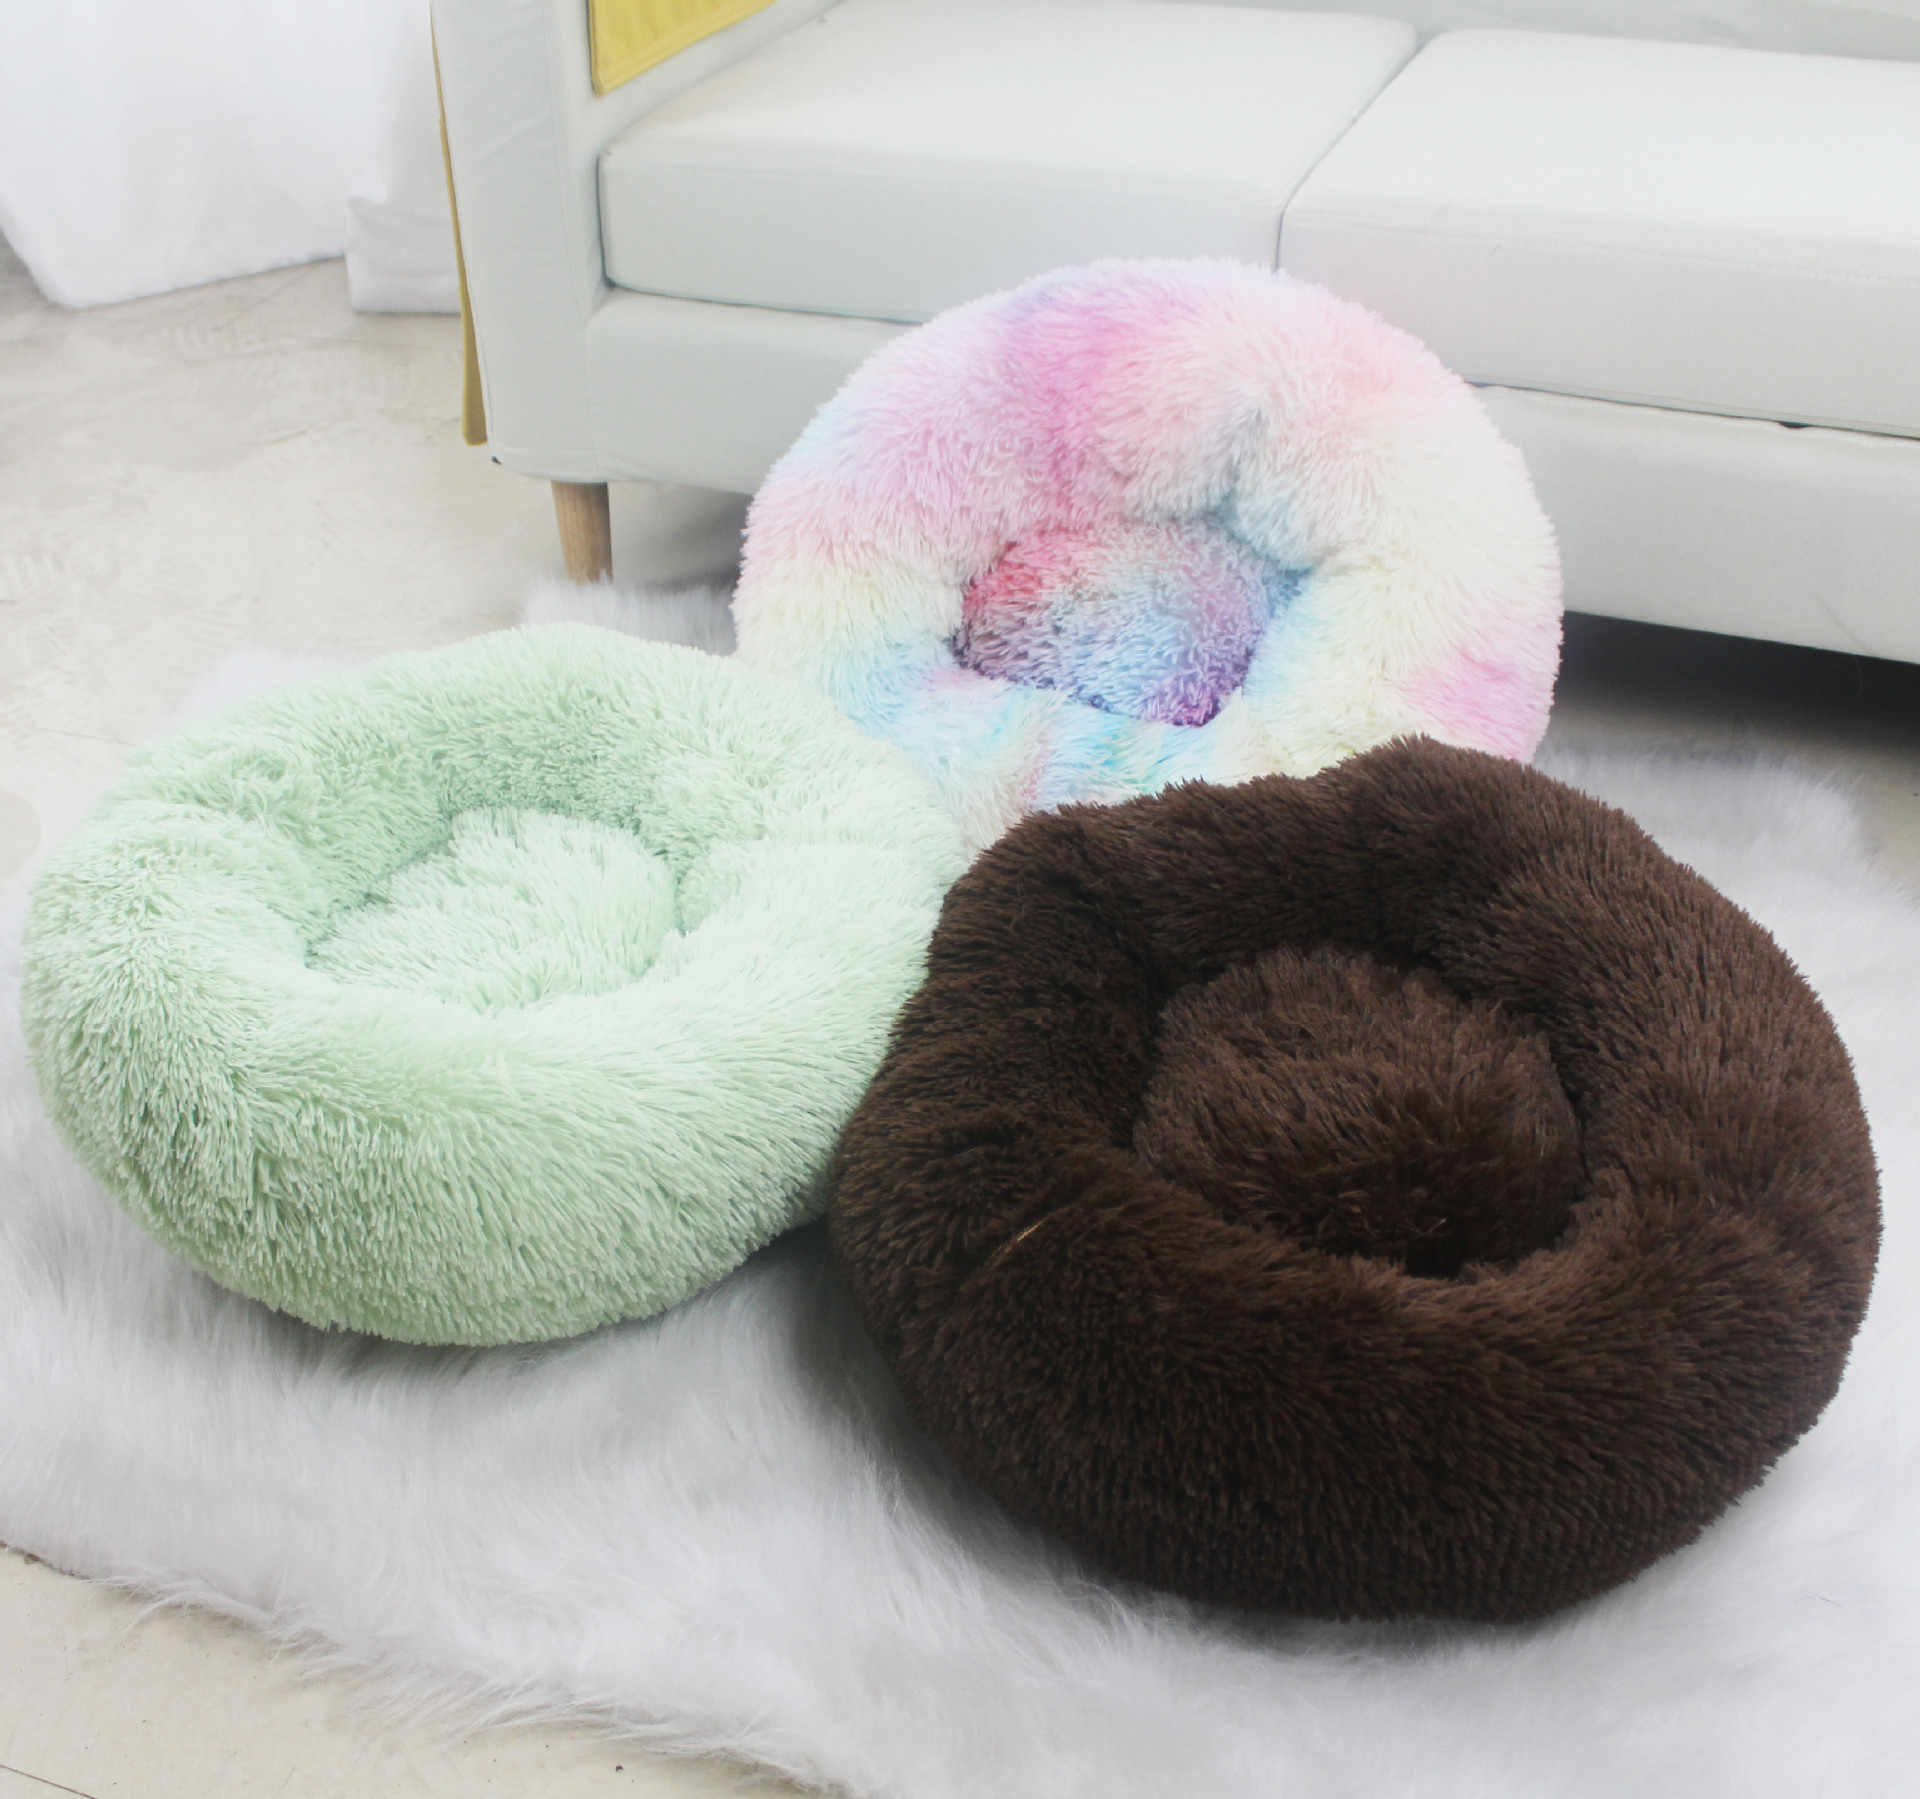 Soft Warm Round Pet Cat Bed Comfortable Pet Nest Dog Cat Use All Year Suitable For Small Medium And Large Cats And Dogs Houses Kennels Pens Aliexpress